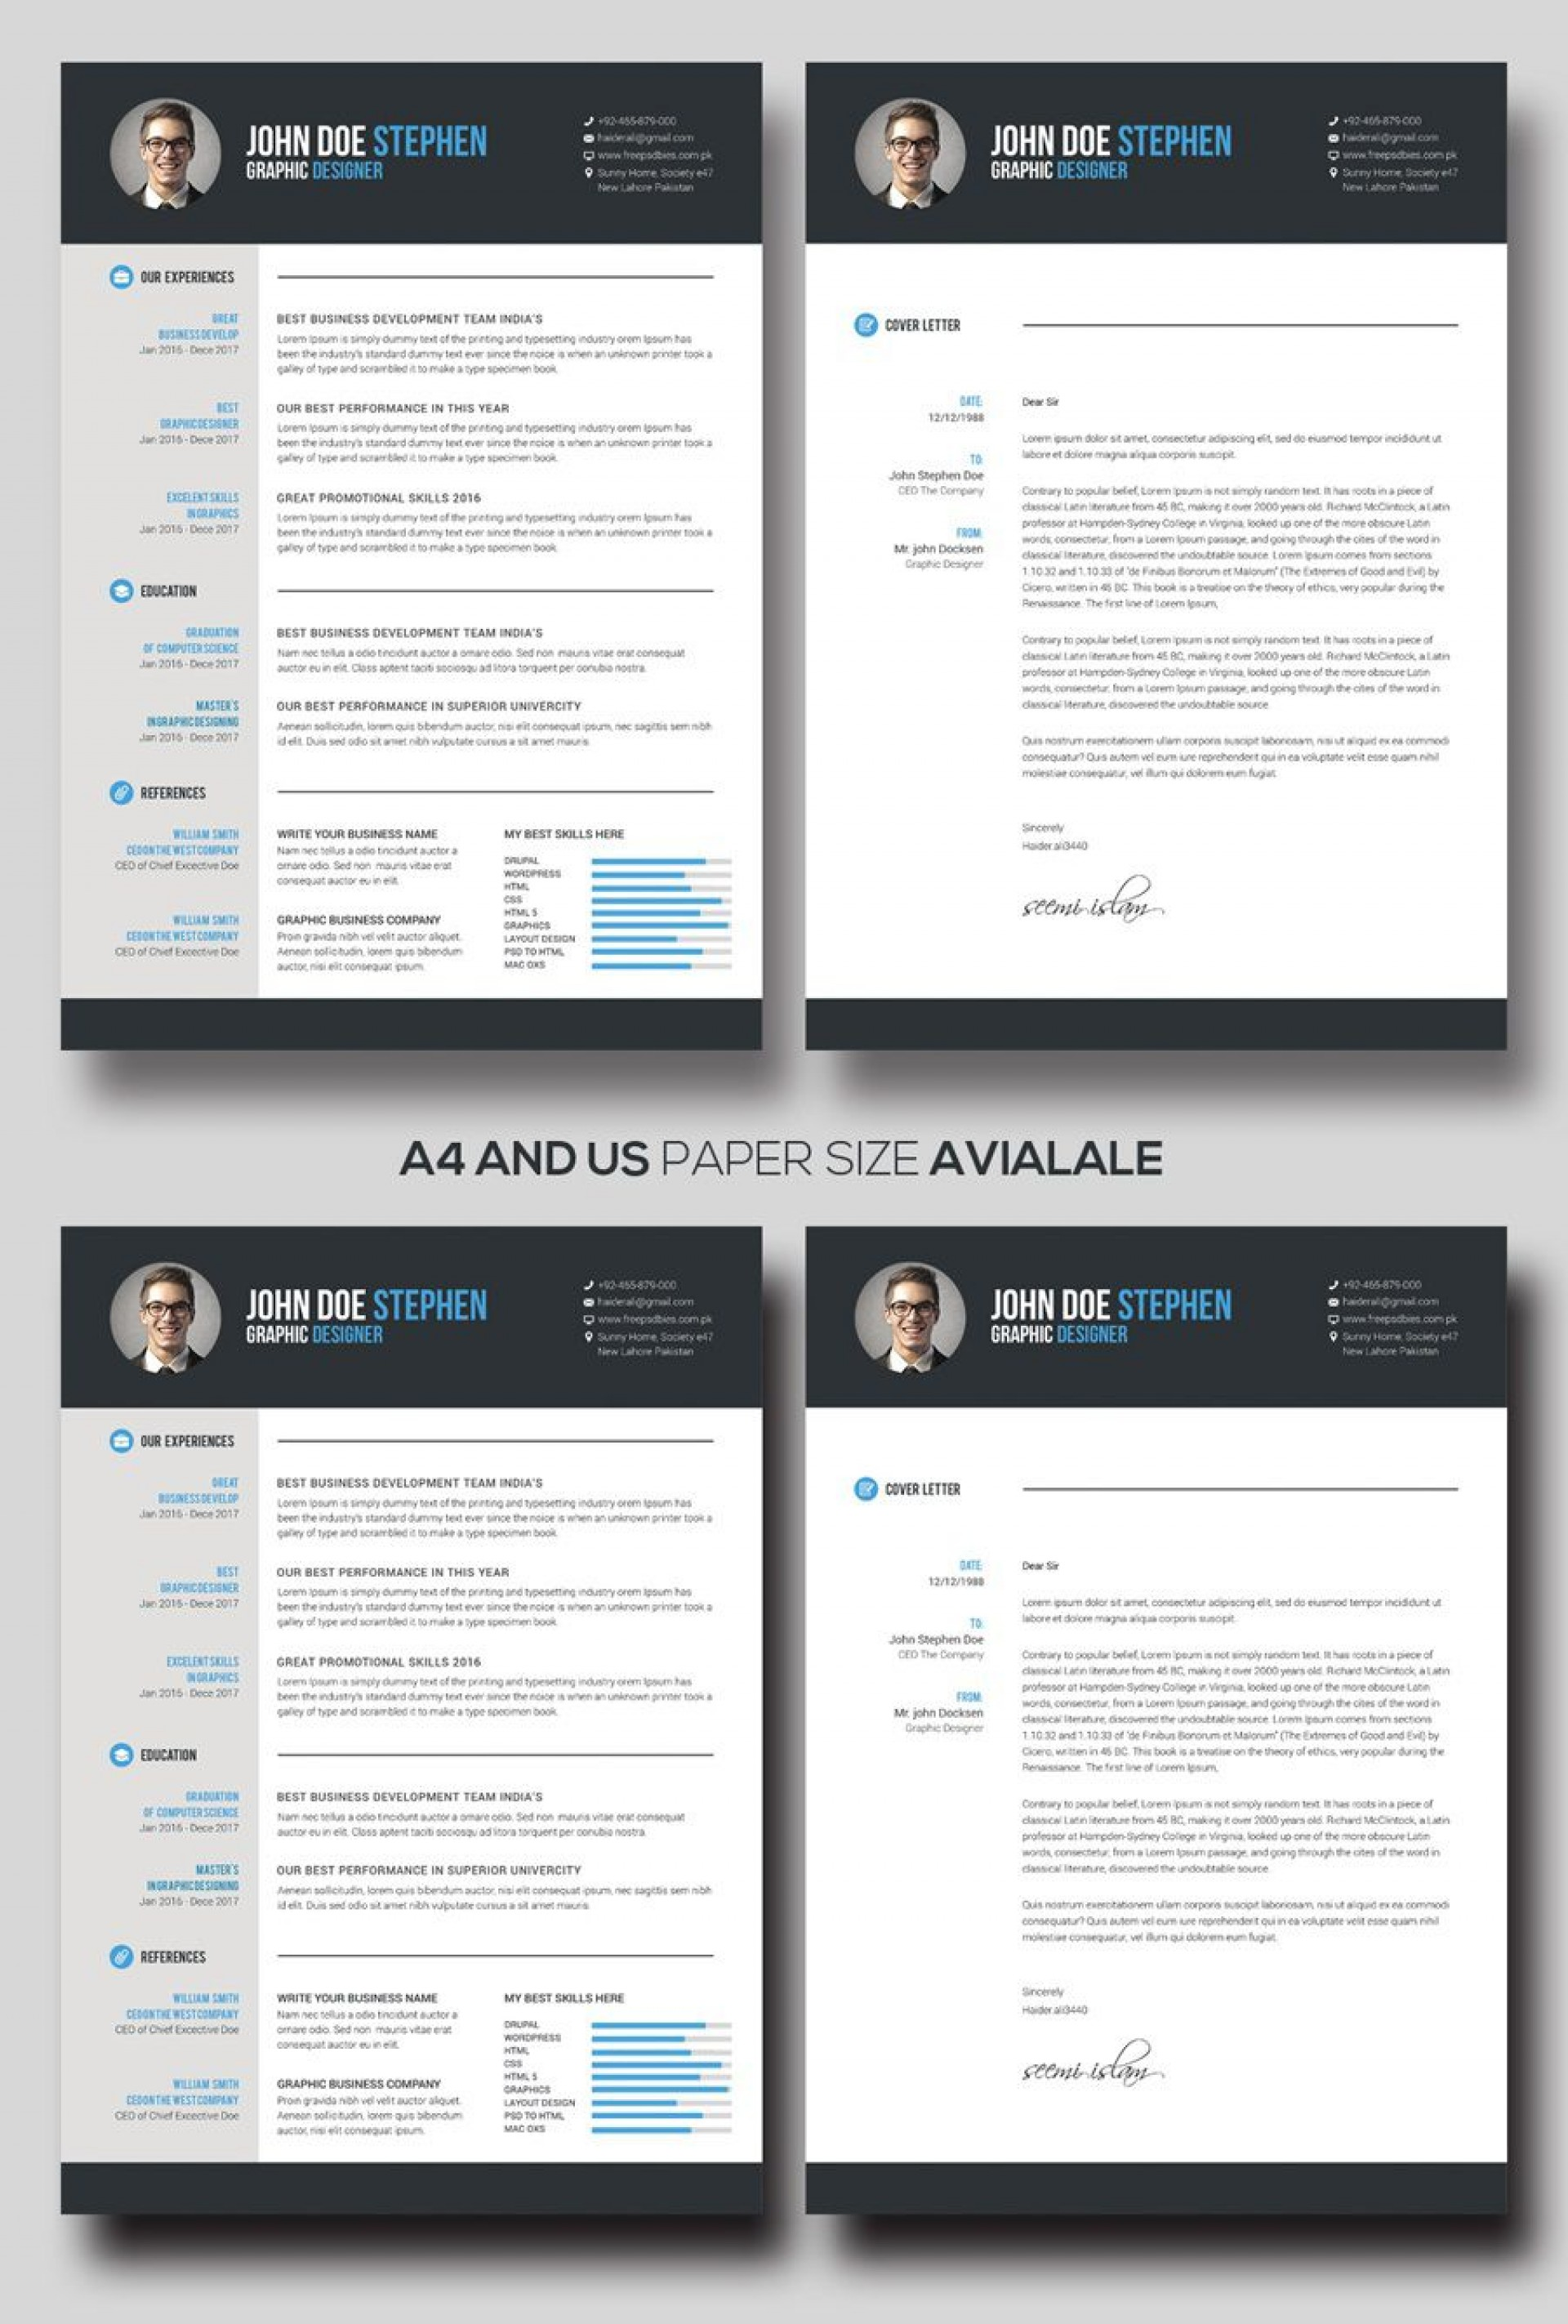 005 Exceptional M Word Template Free Download Picture  Microsoft Office Invoice Letterhead 2003 Resume1920